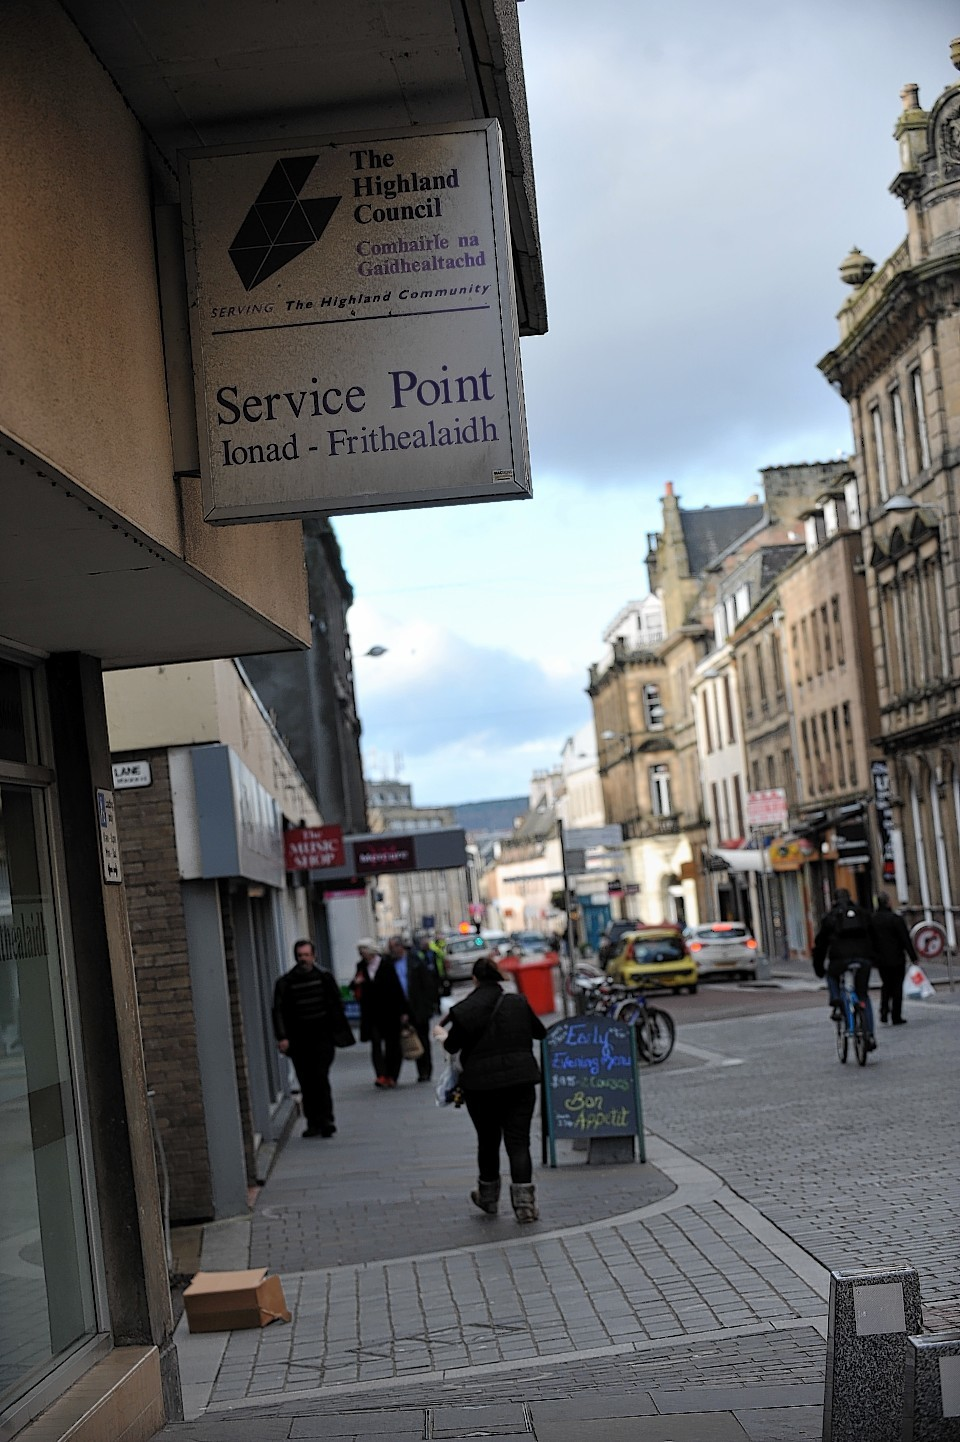 Inverness Service Point will be one of 13 main contact centres for Highland Council services